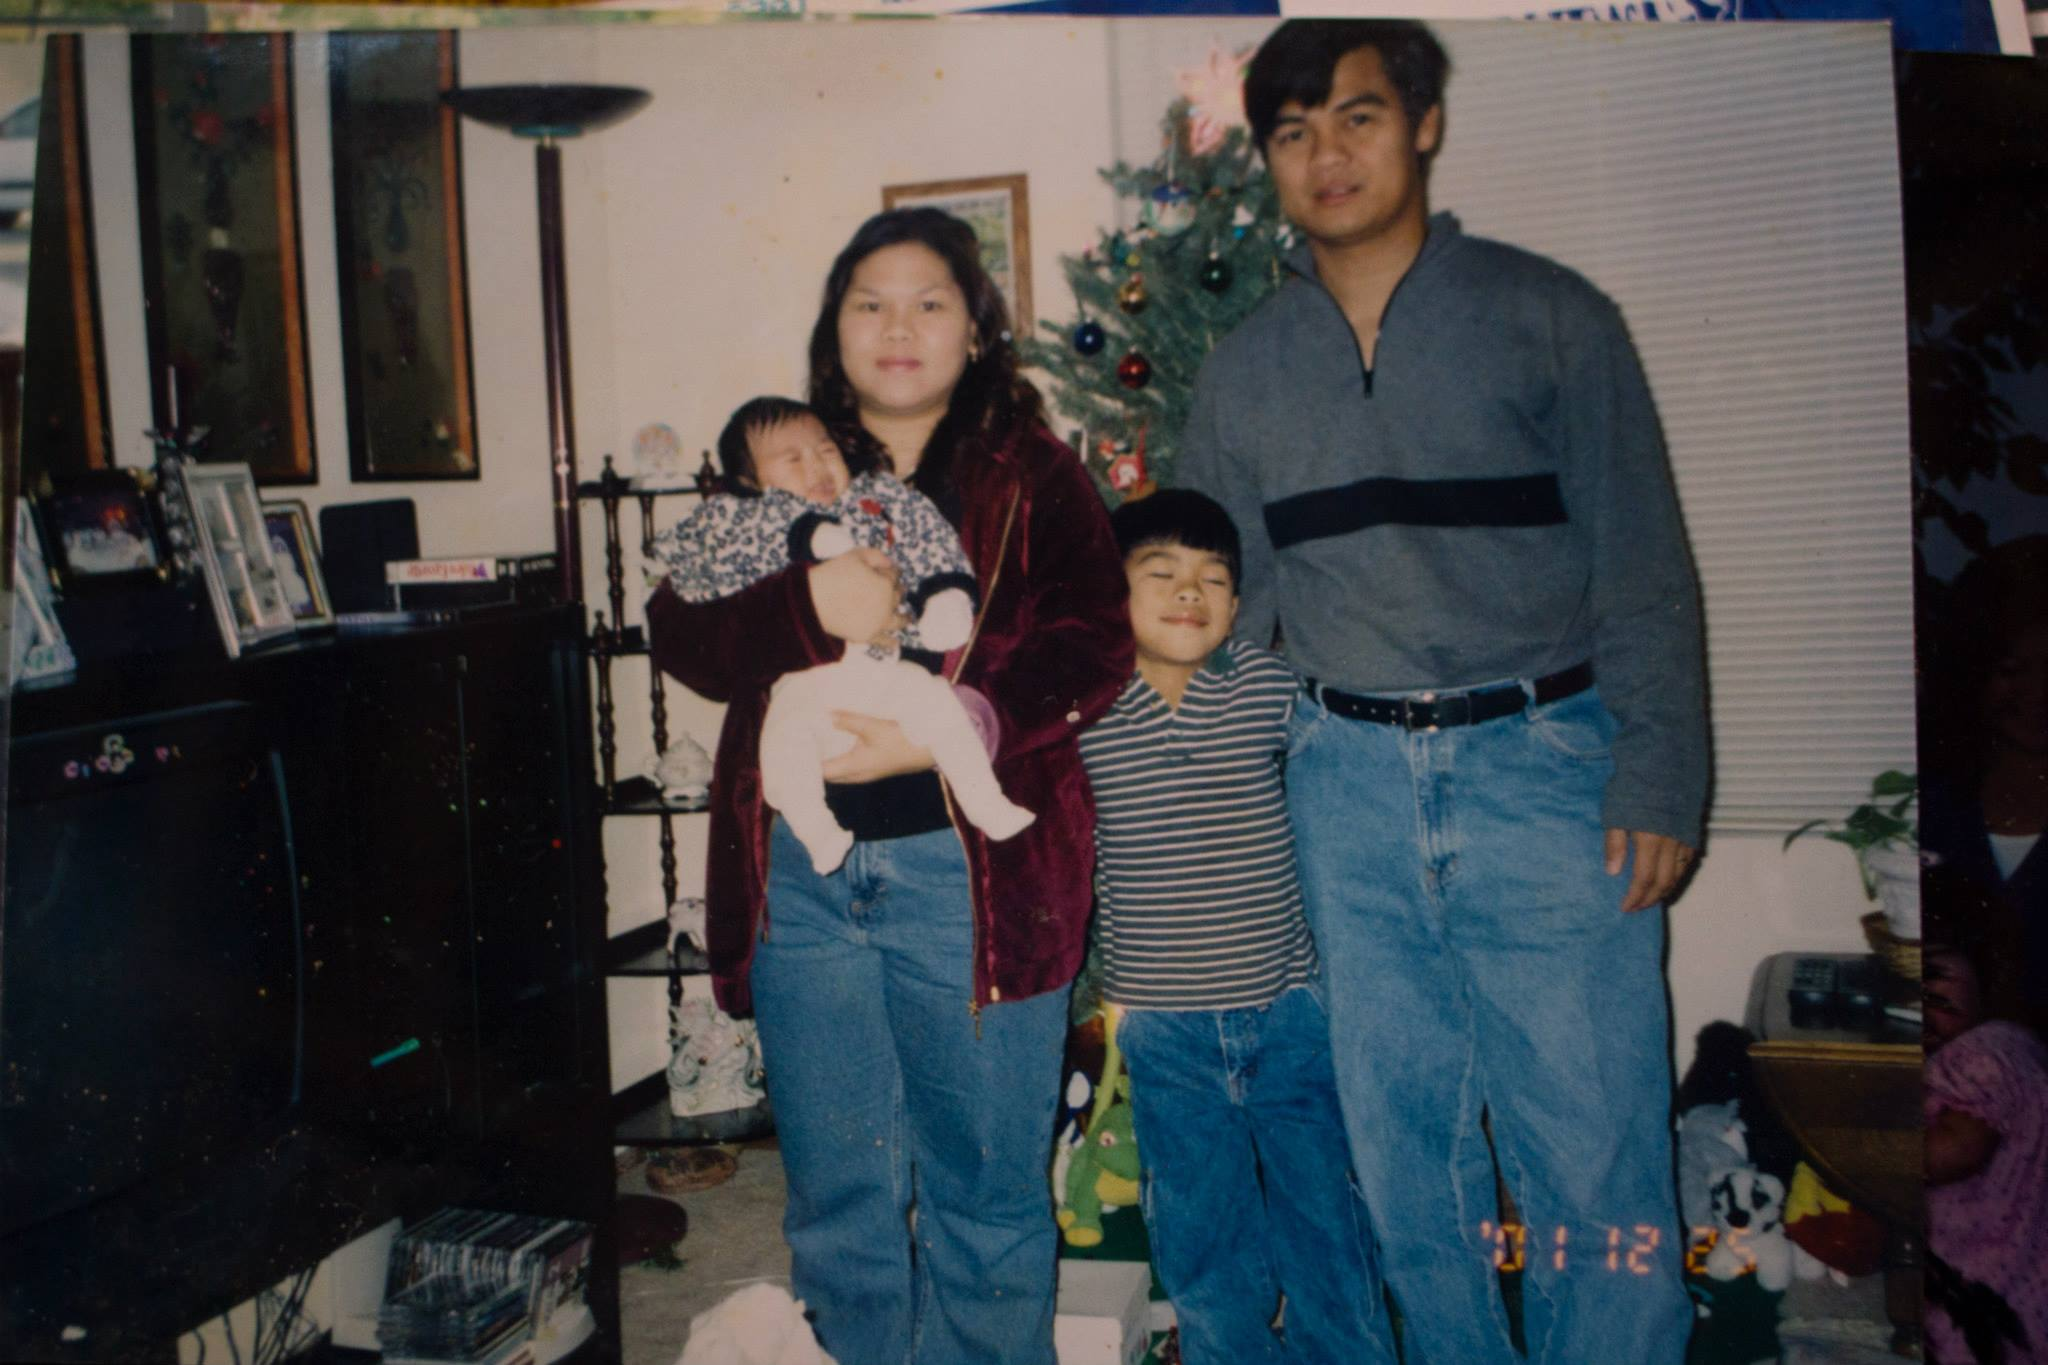 Our first apartment in Brentwood, California. Circa 2001